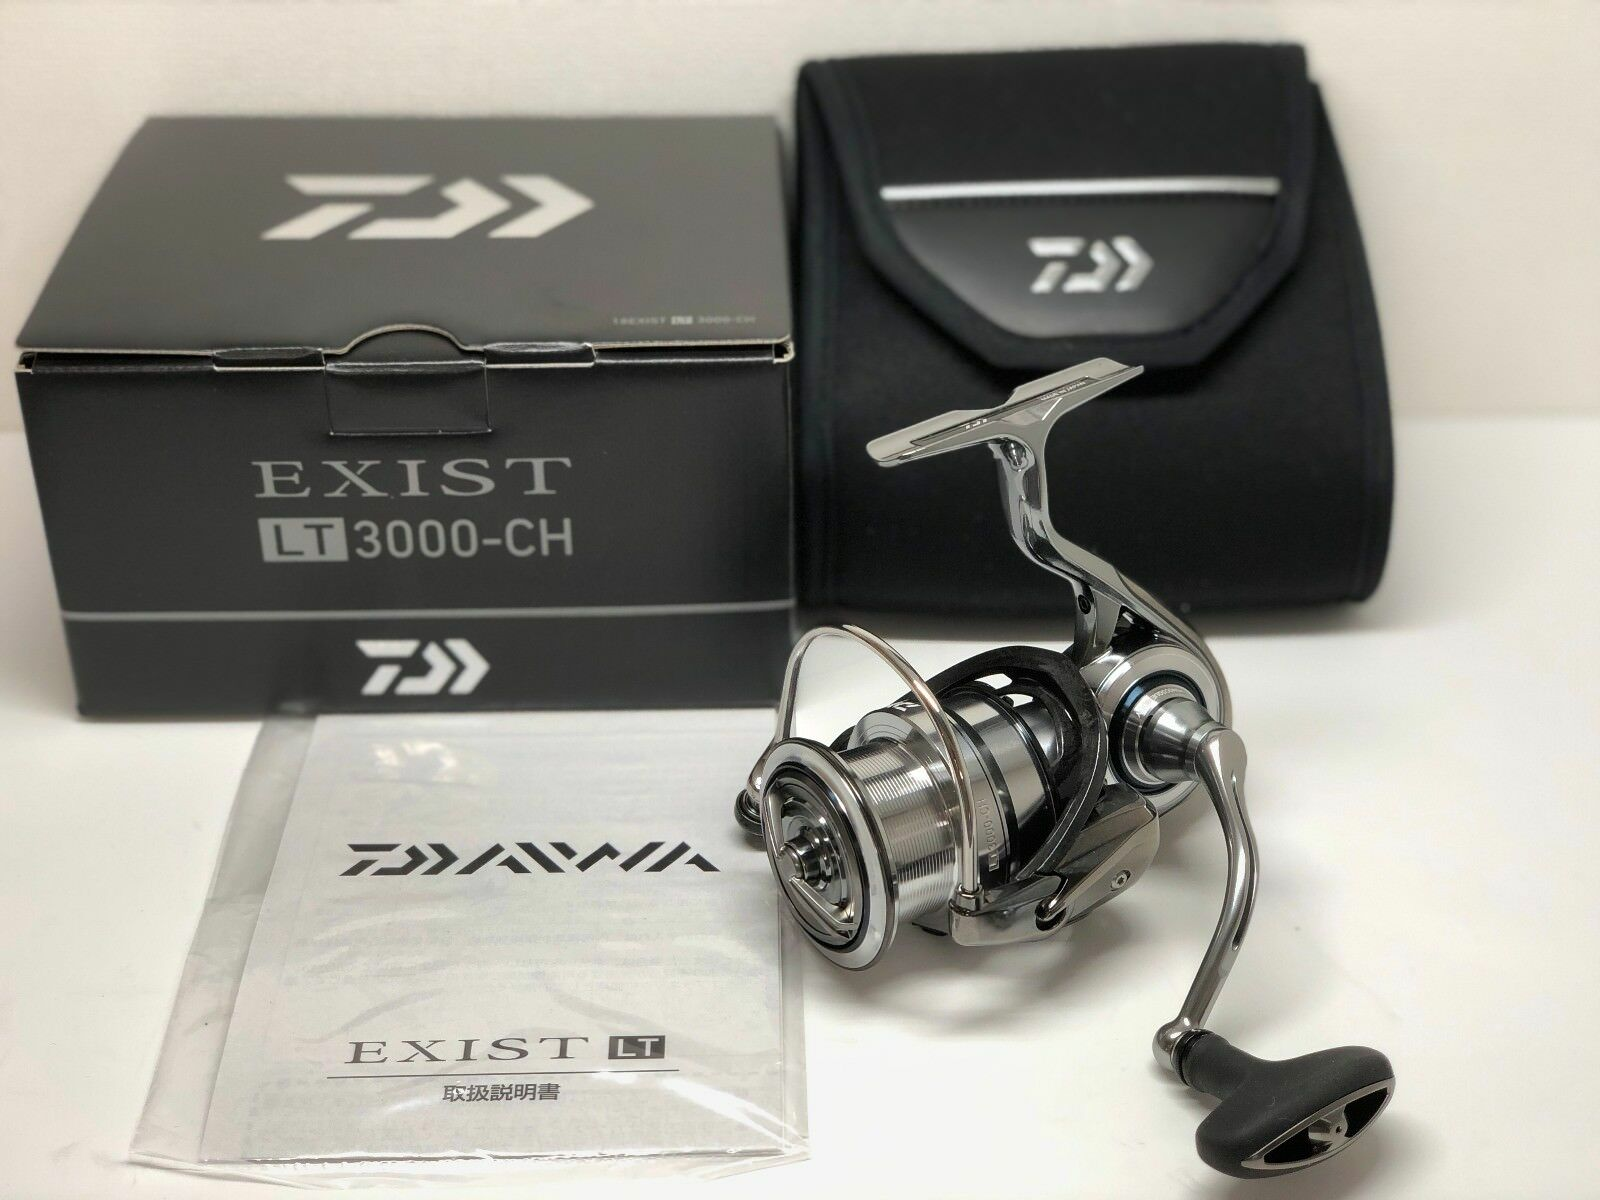 DAIWA 18 EXIST LT3000-CH - from Japan